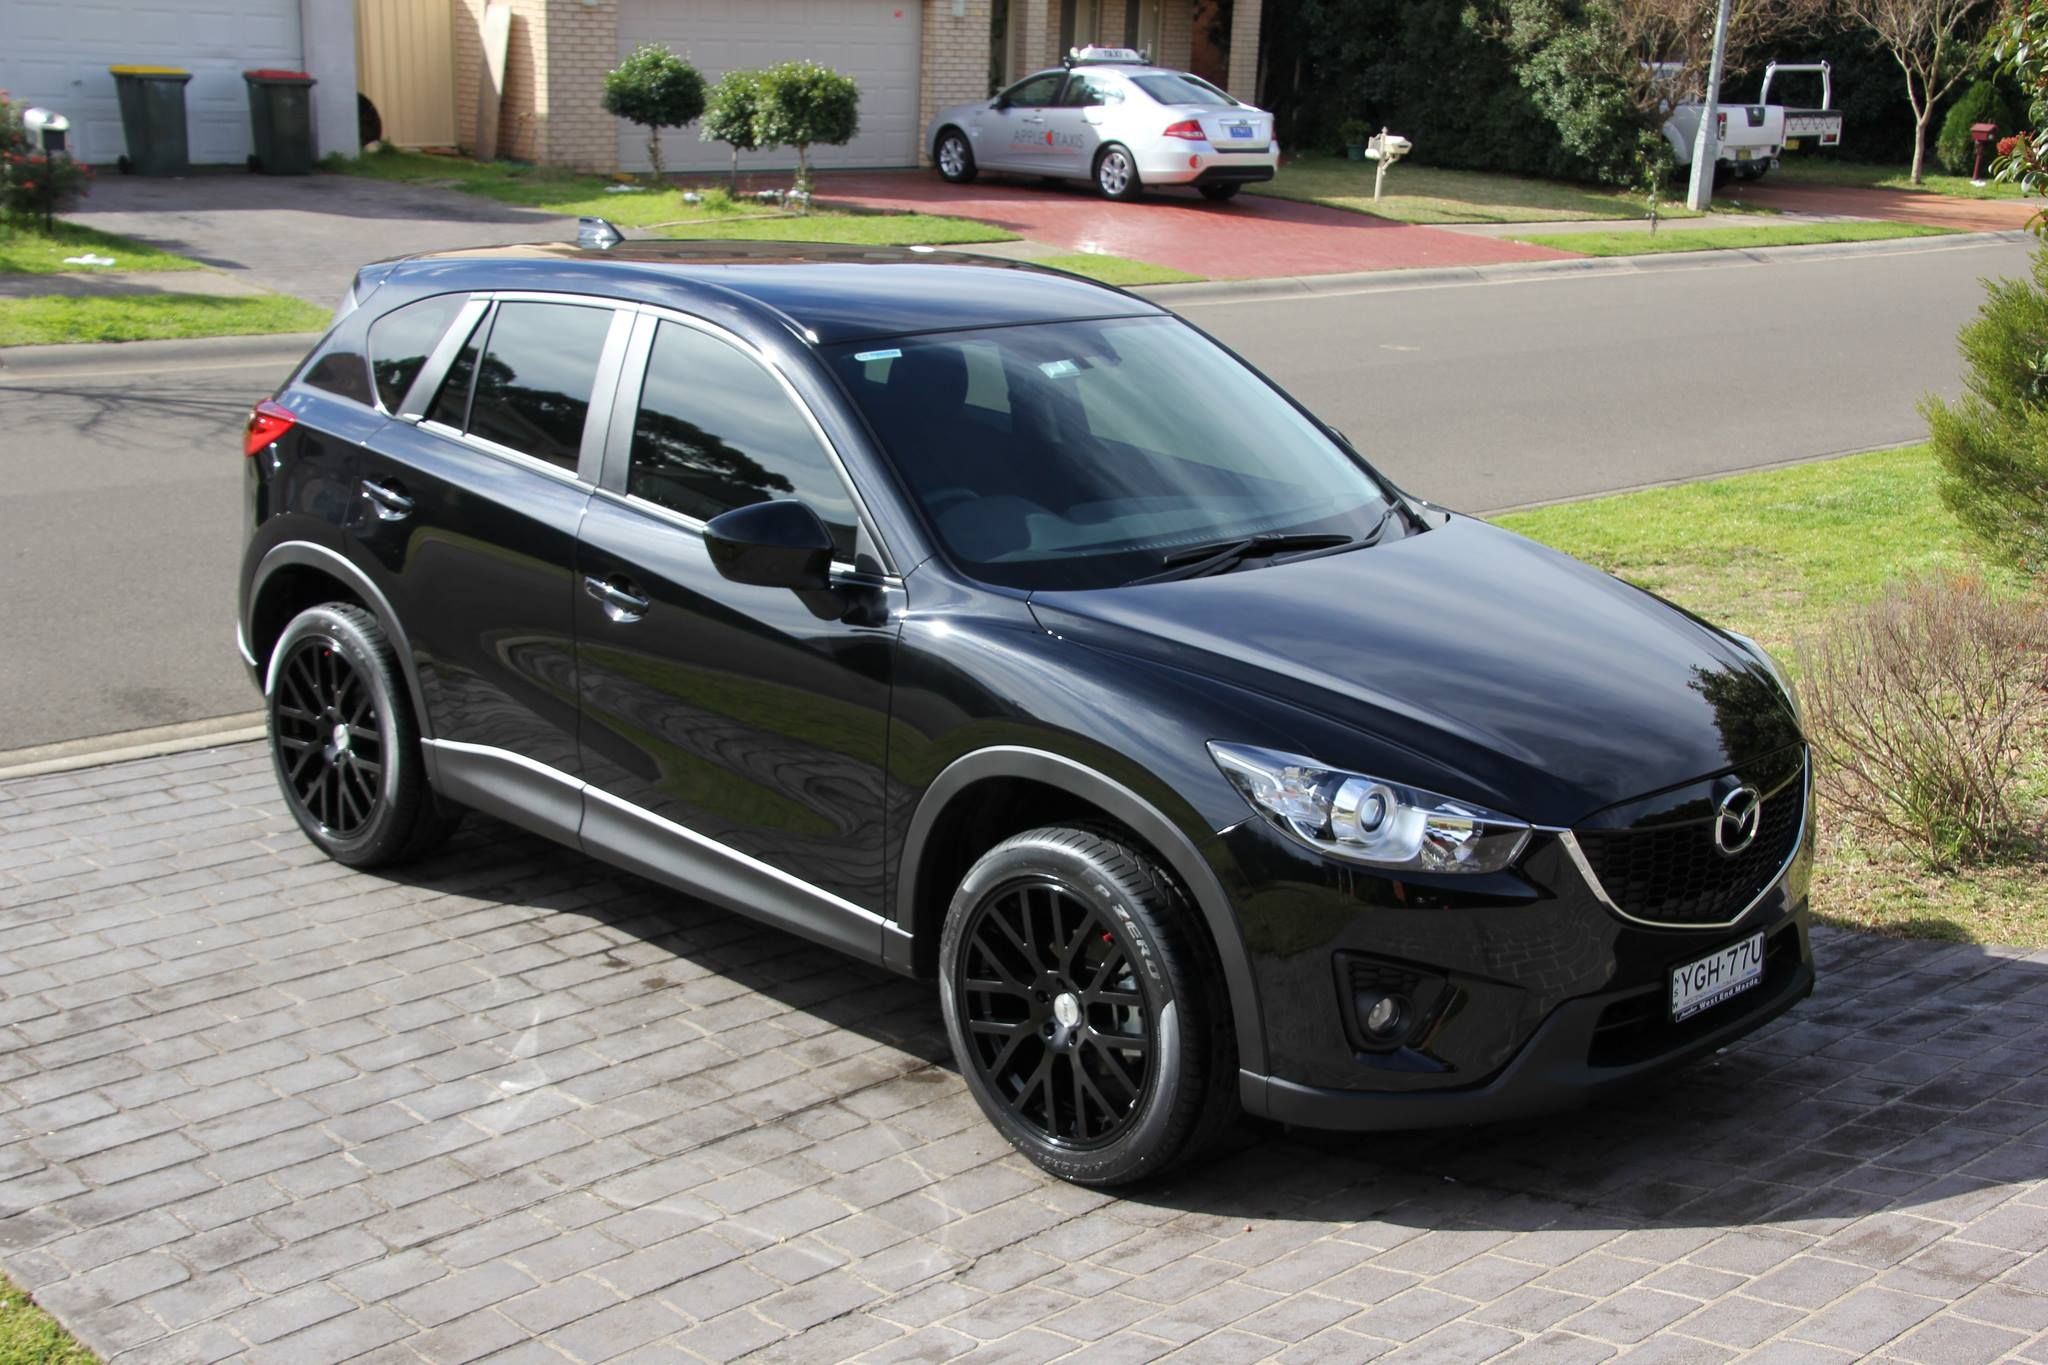 Mazda Cx 9 Rims >> Mazda cx 9 black rims | Car Ideas | Pinterest | Mazda cx5, Wheels and Mazda